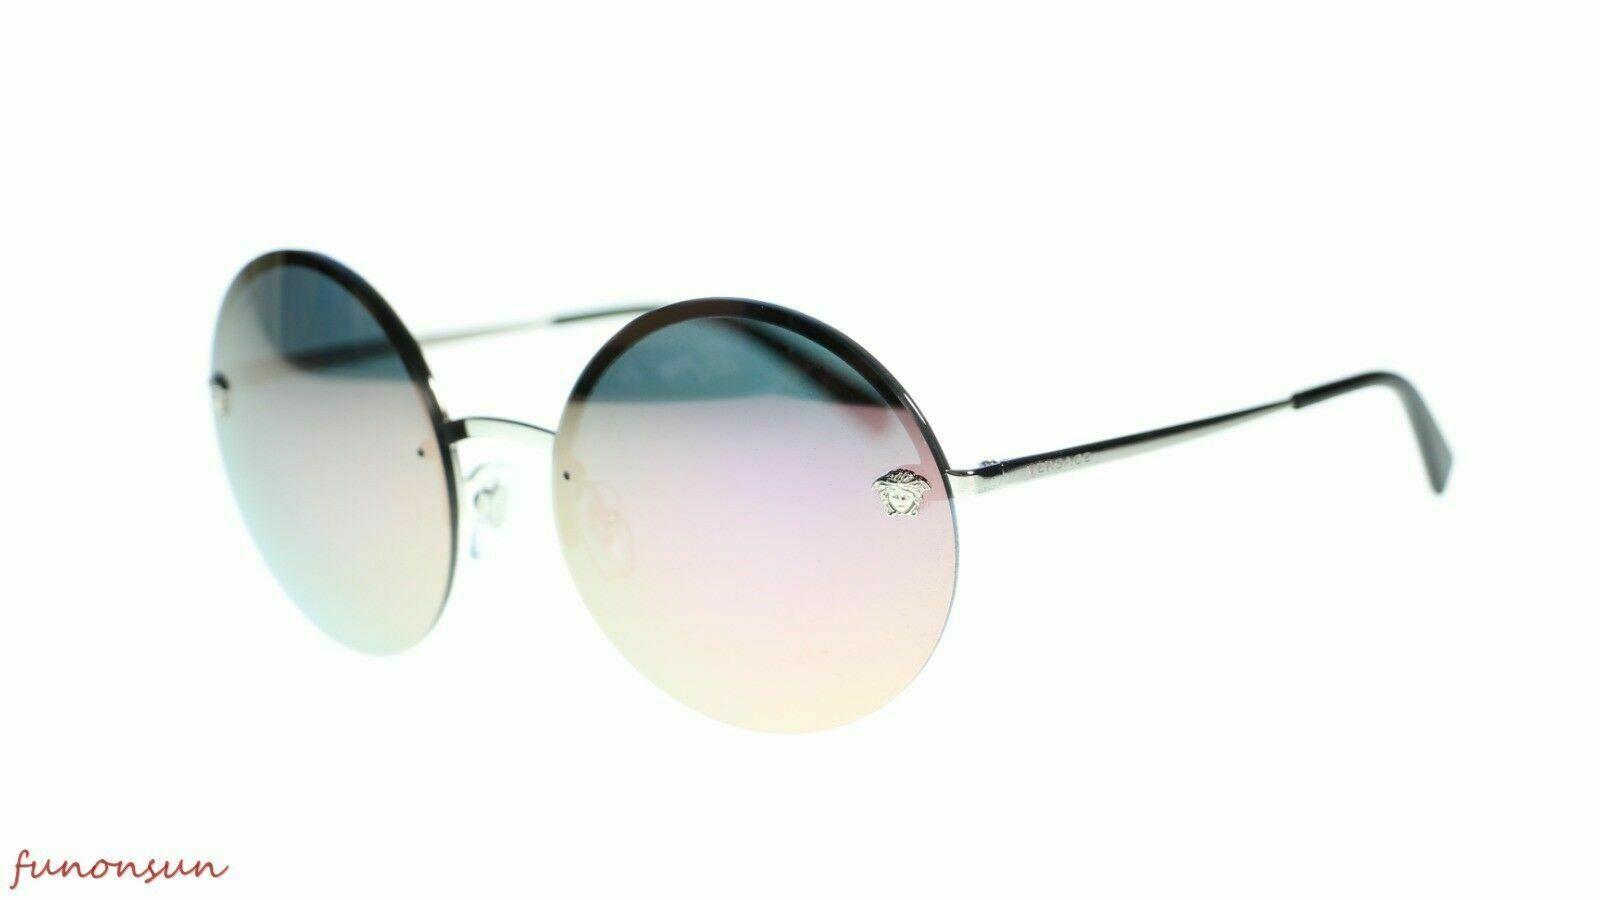 Versace Women's Sunglasses VE2176 Round Metal Frame 59mm Authentic